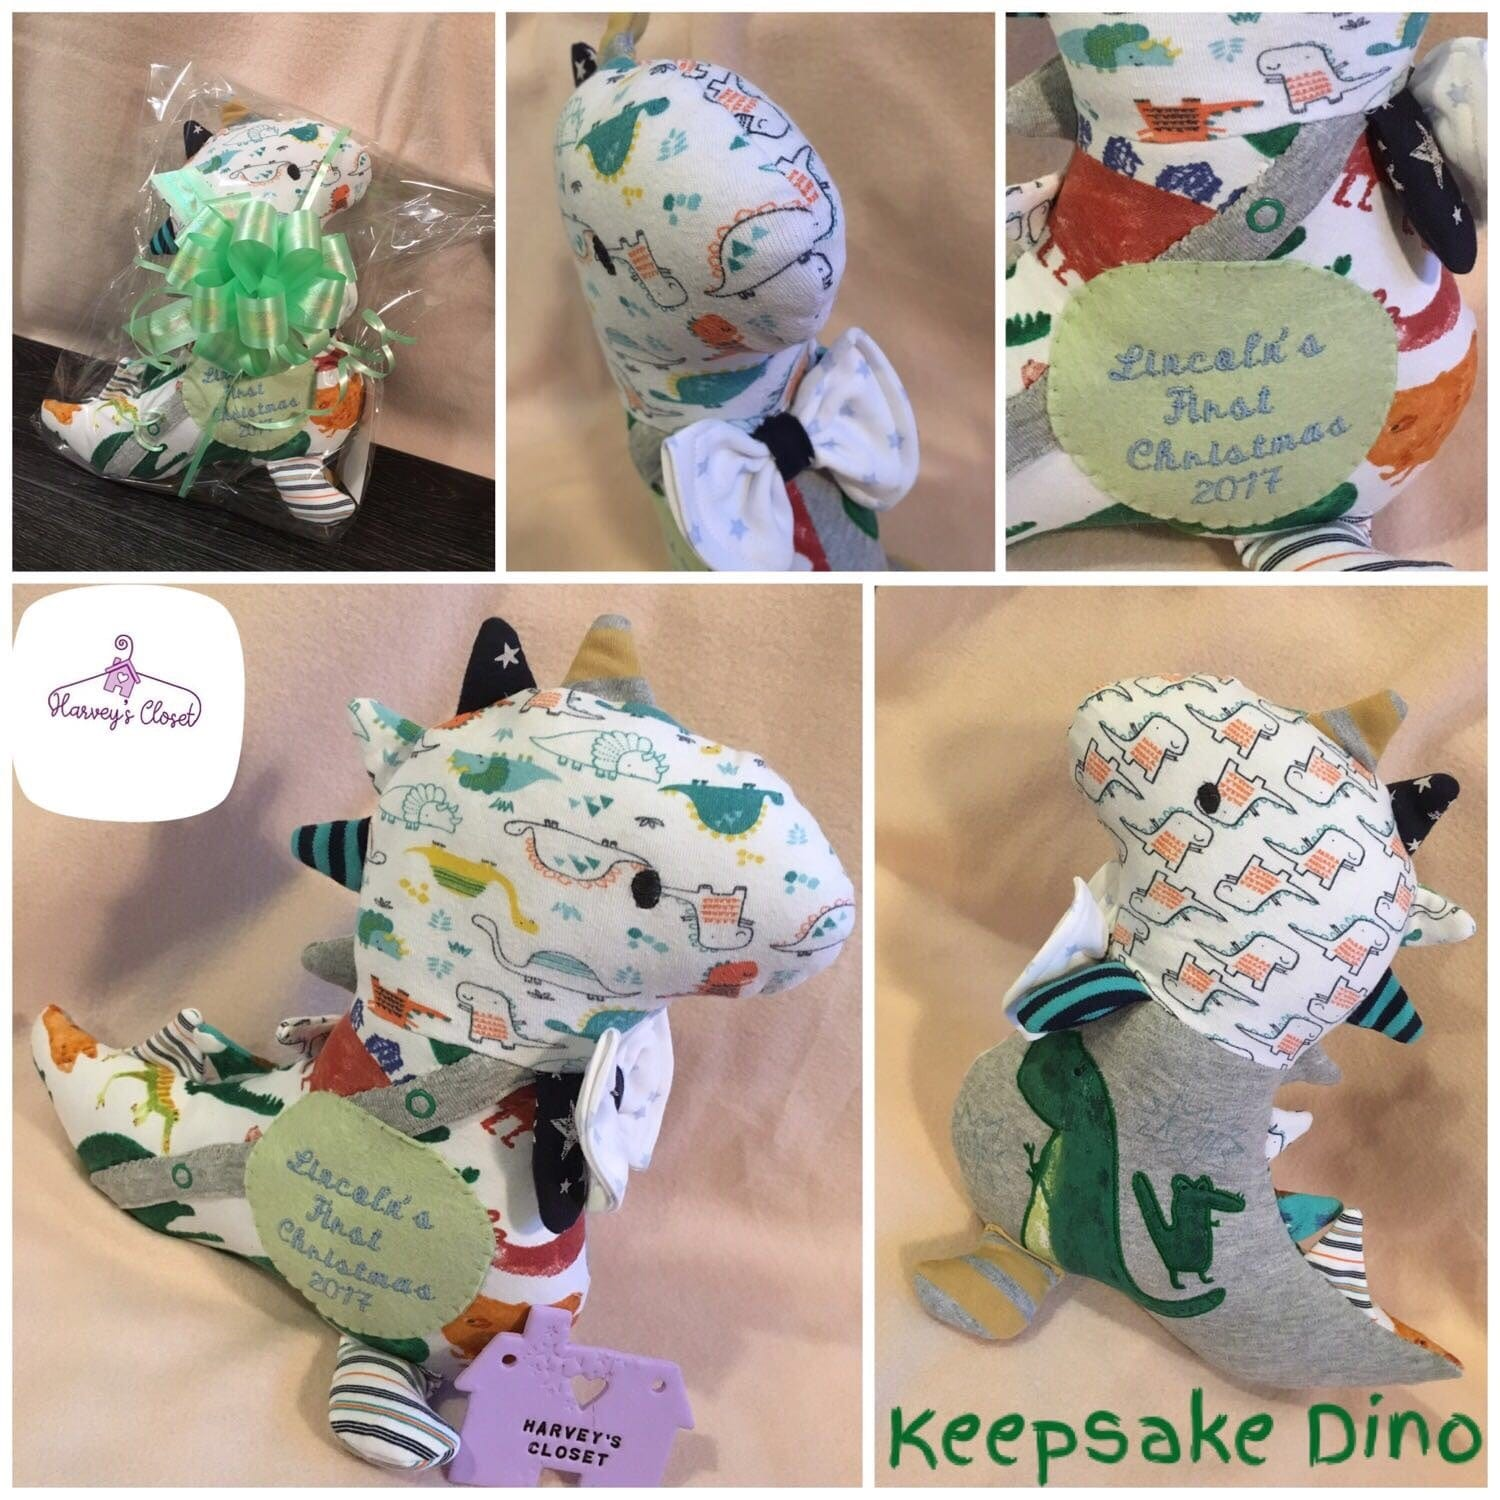 T-Rex Keepsake - HarveysToyShed